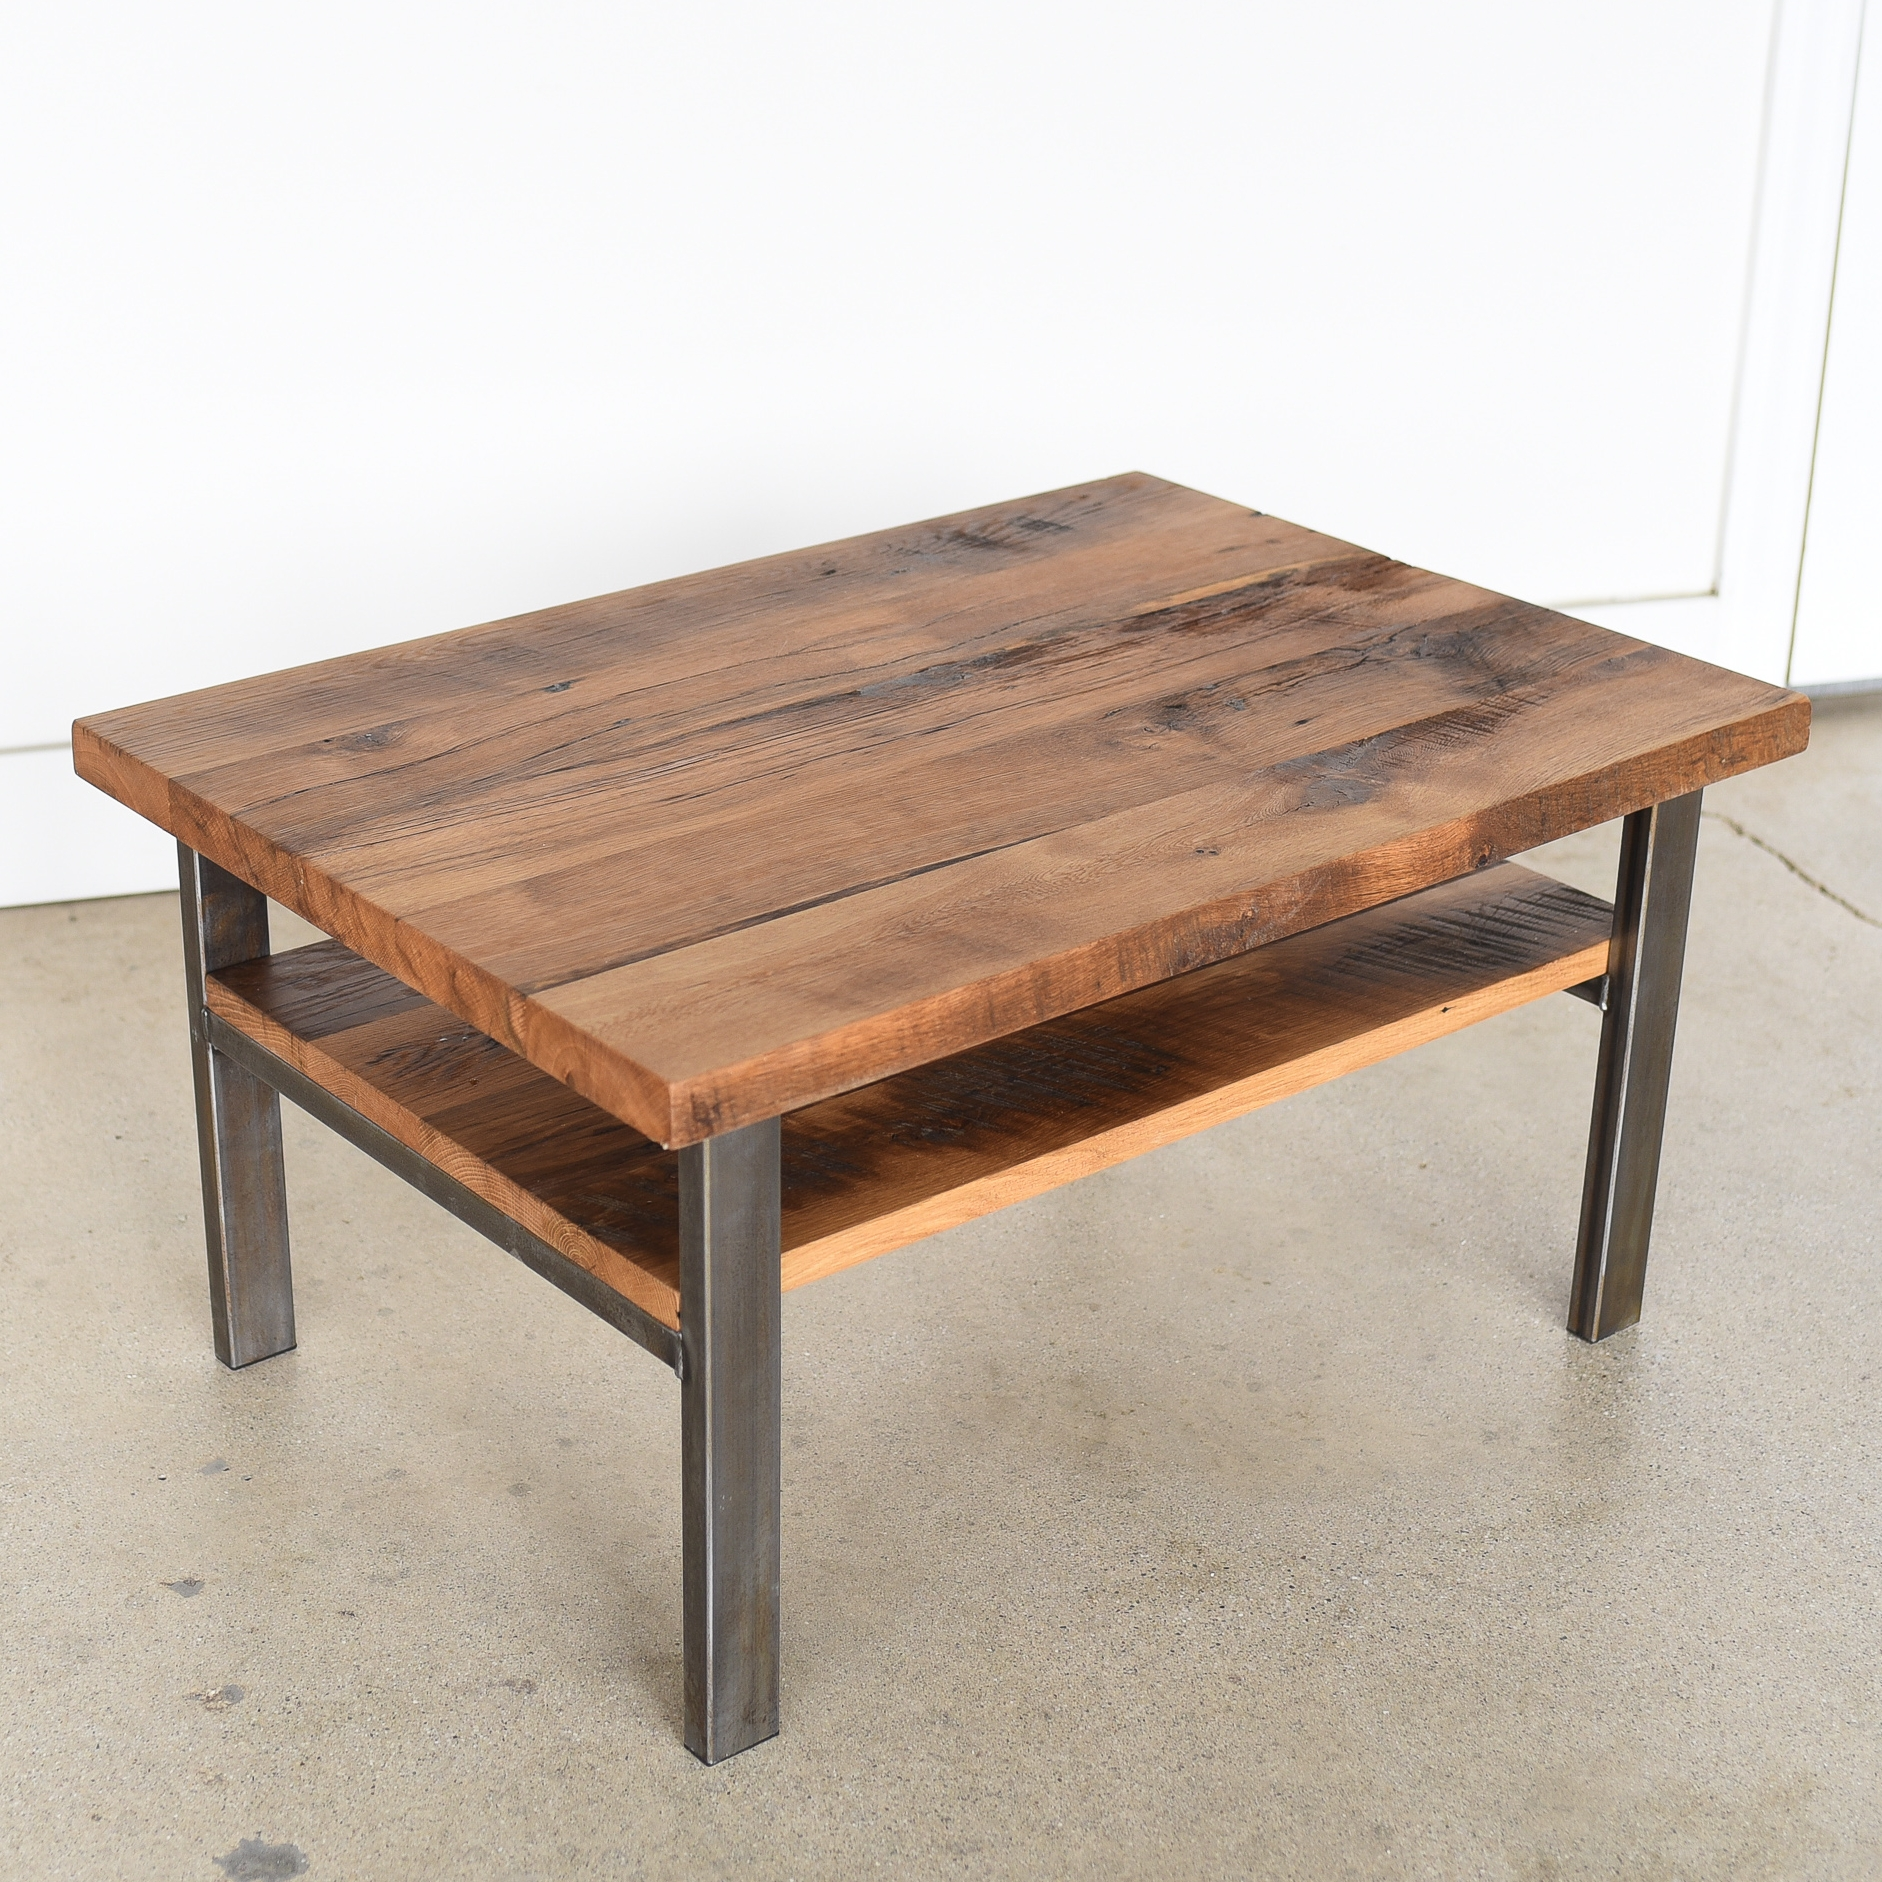 Reclaimed Wood Timber Coffee Table High Shelf What We Make